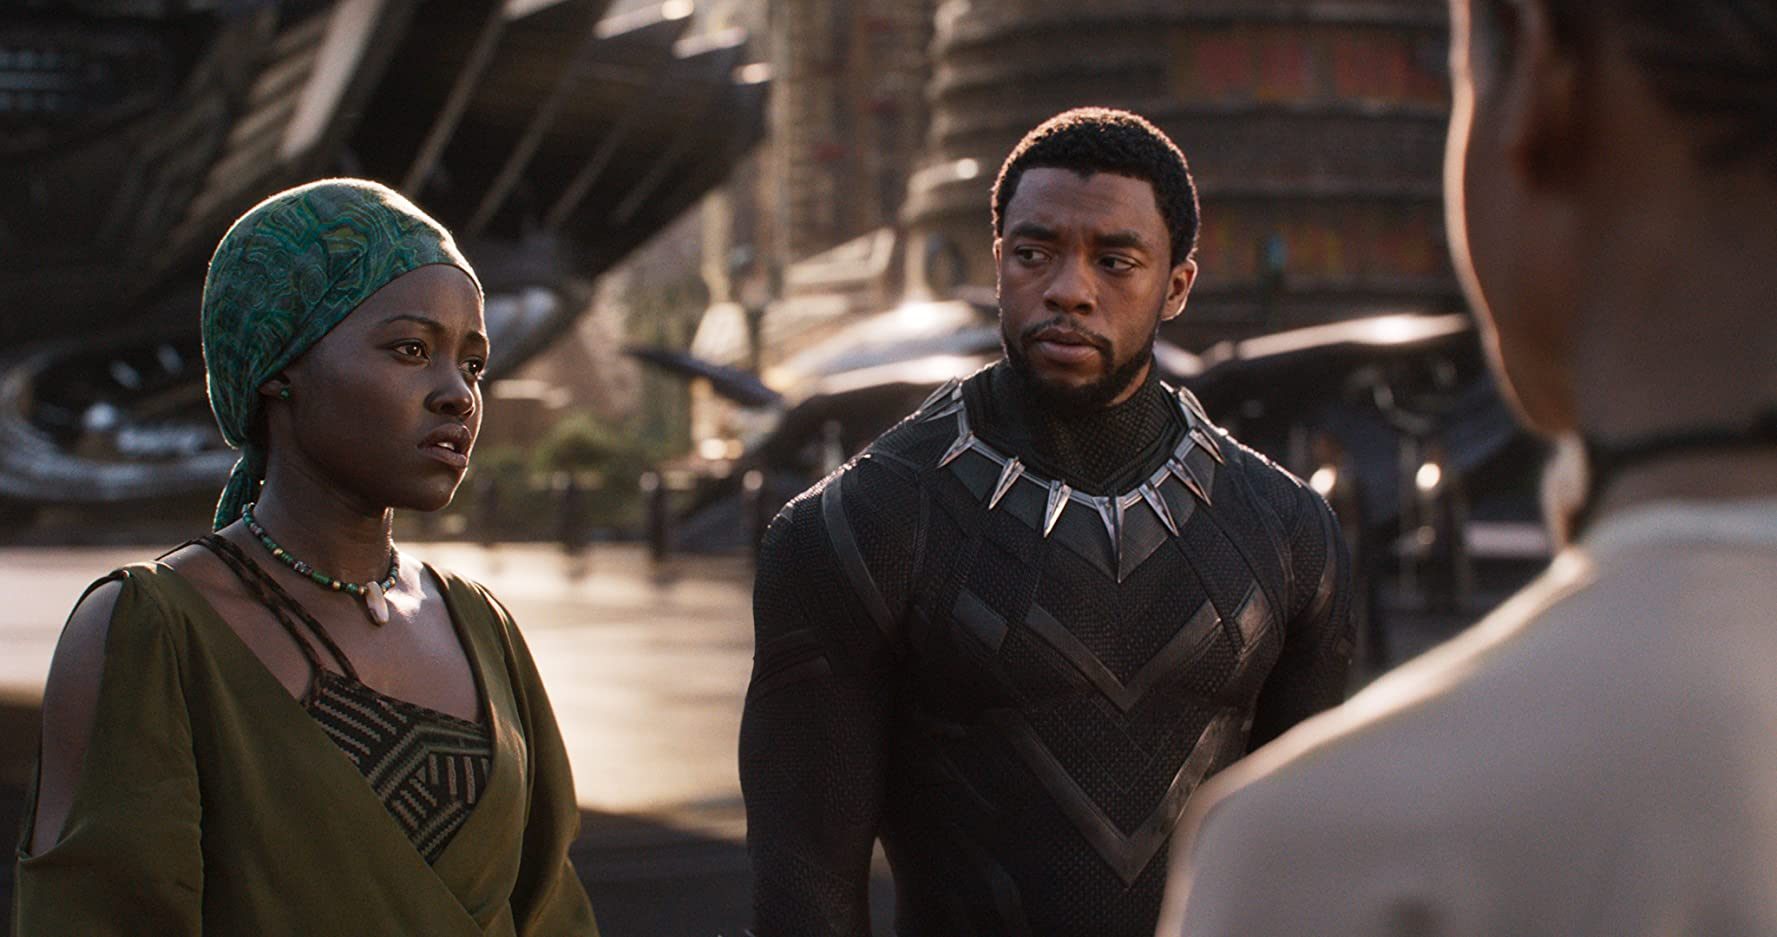 Chadwick Boseman and Lupita Nyong'o in Black Panther (2018)